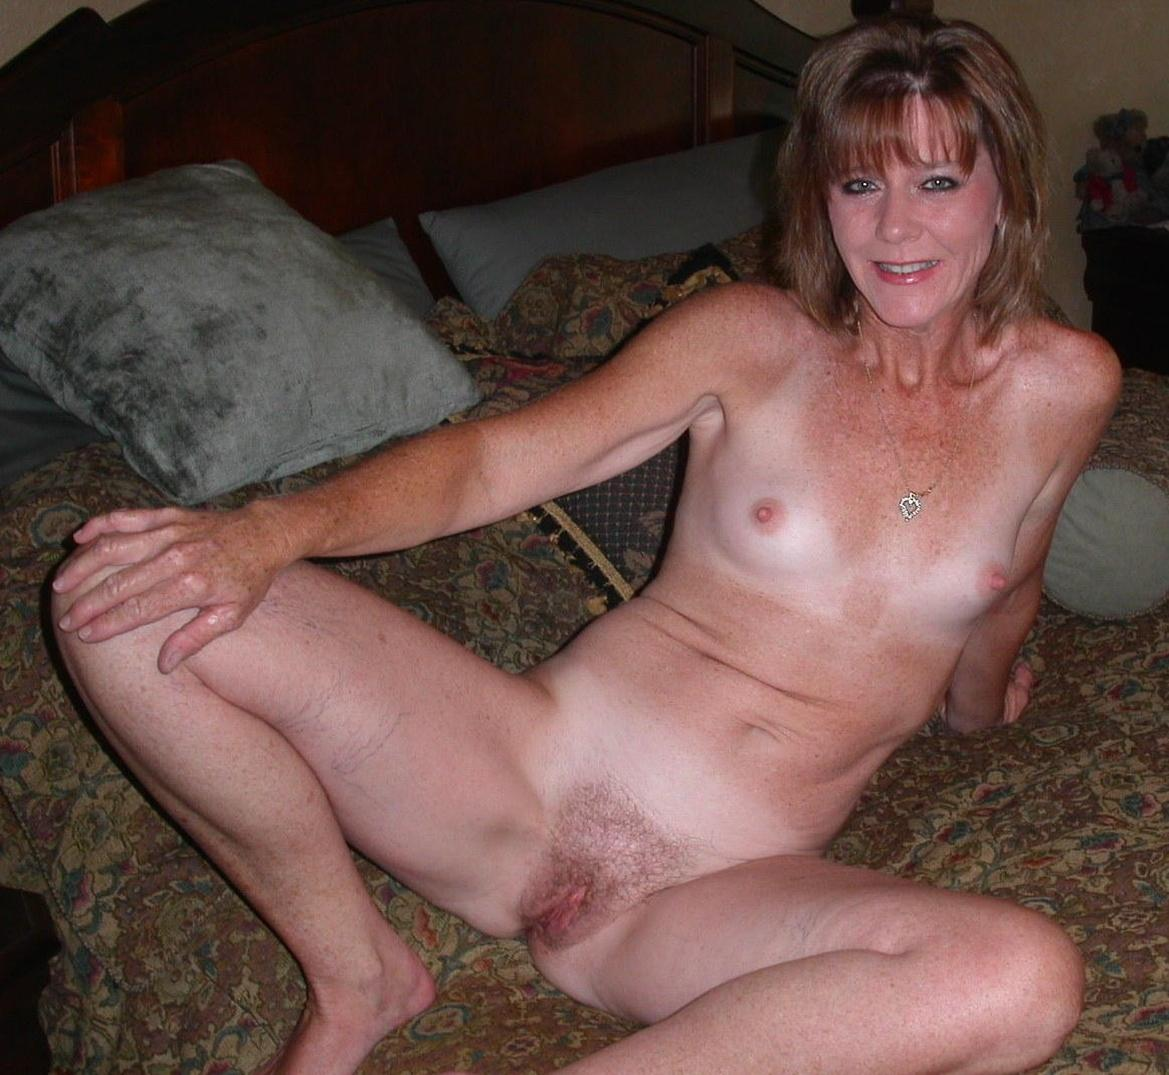 Hairy blonde lesbian pussy